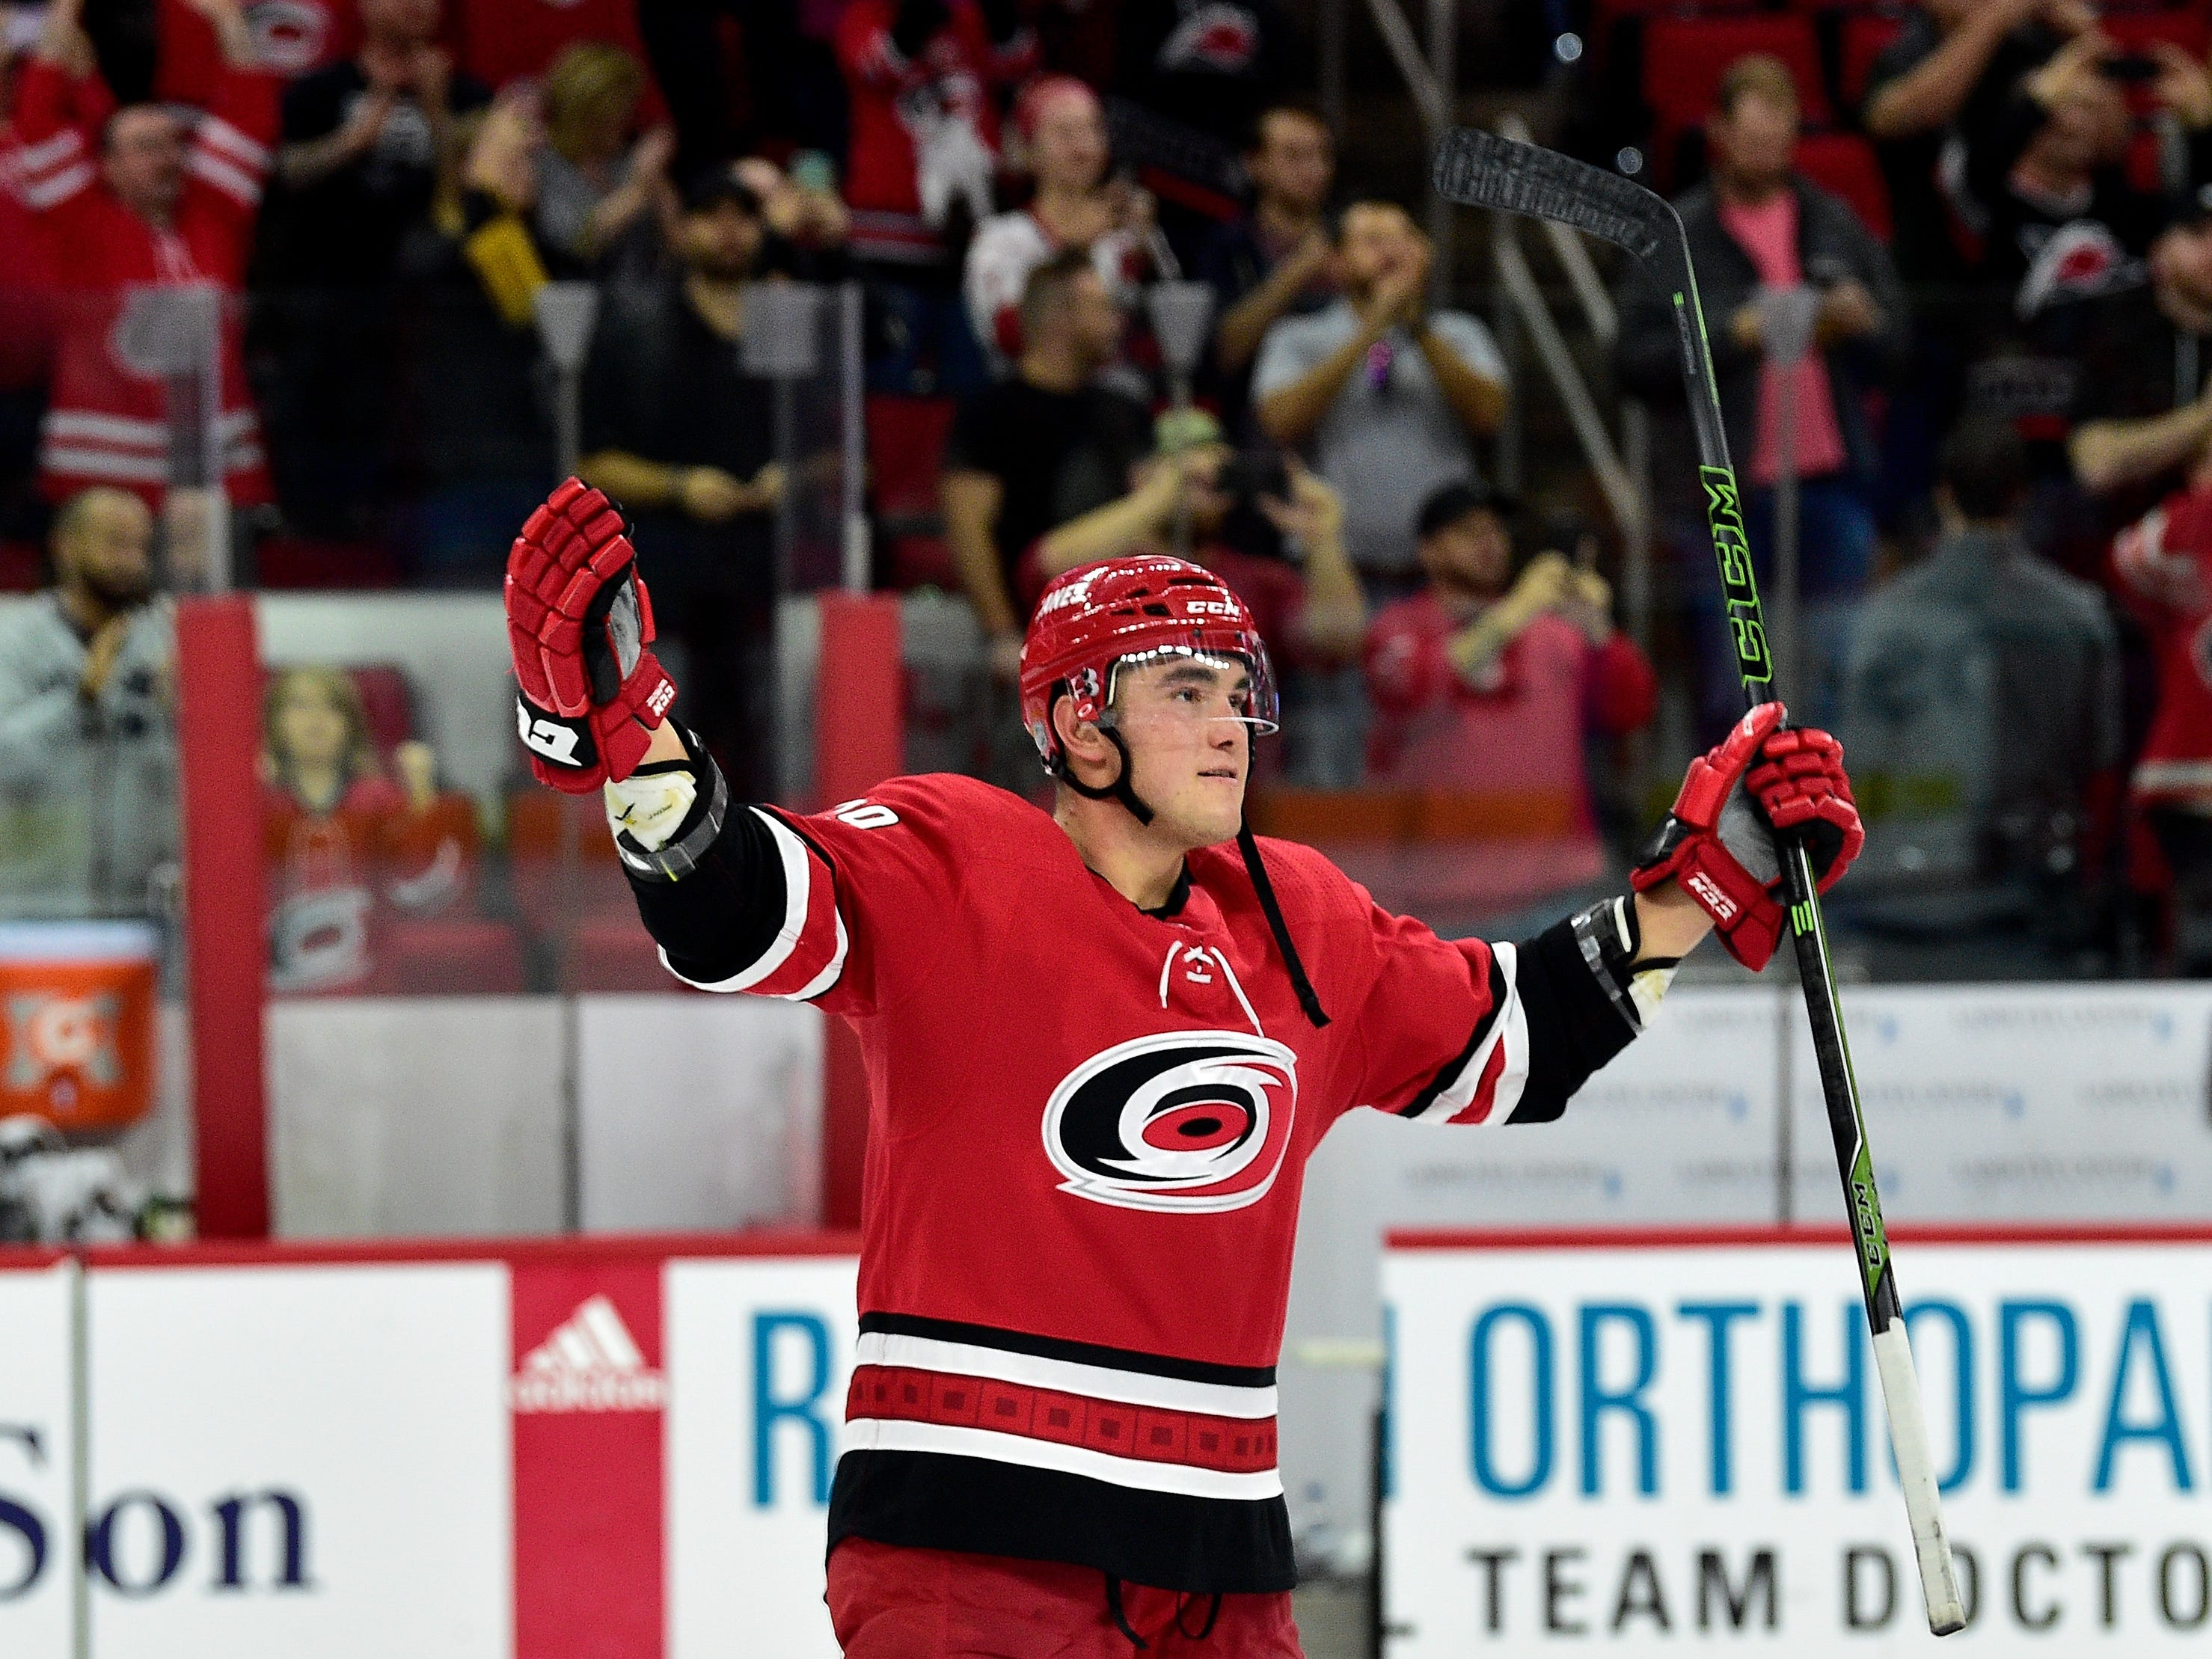 10. Micheal Ferland, LW, Carolina: The Hurricanes are in the playoff hunt and Ferland supplies a physical presence they don't have much of. A lot of teams would like to add him for the playoff push.